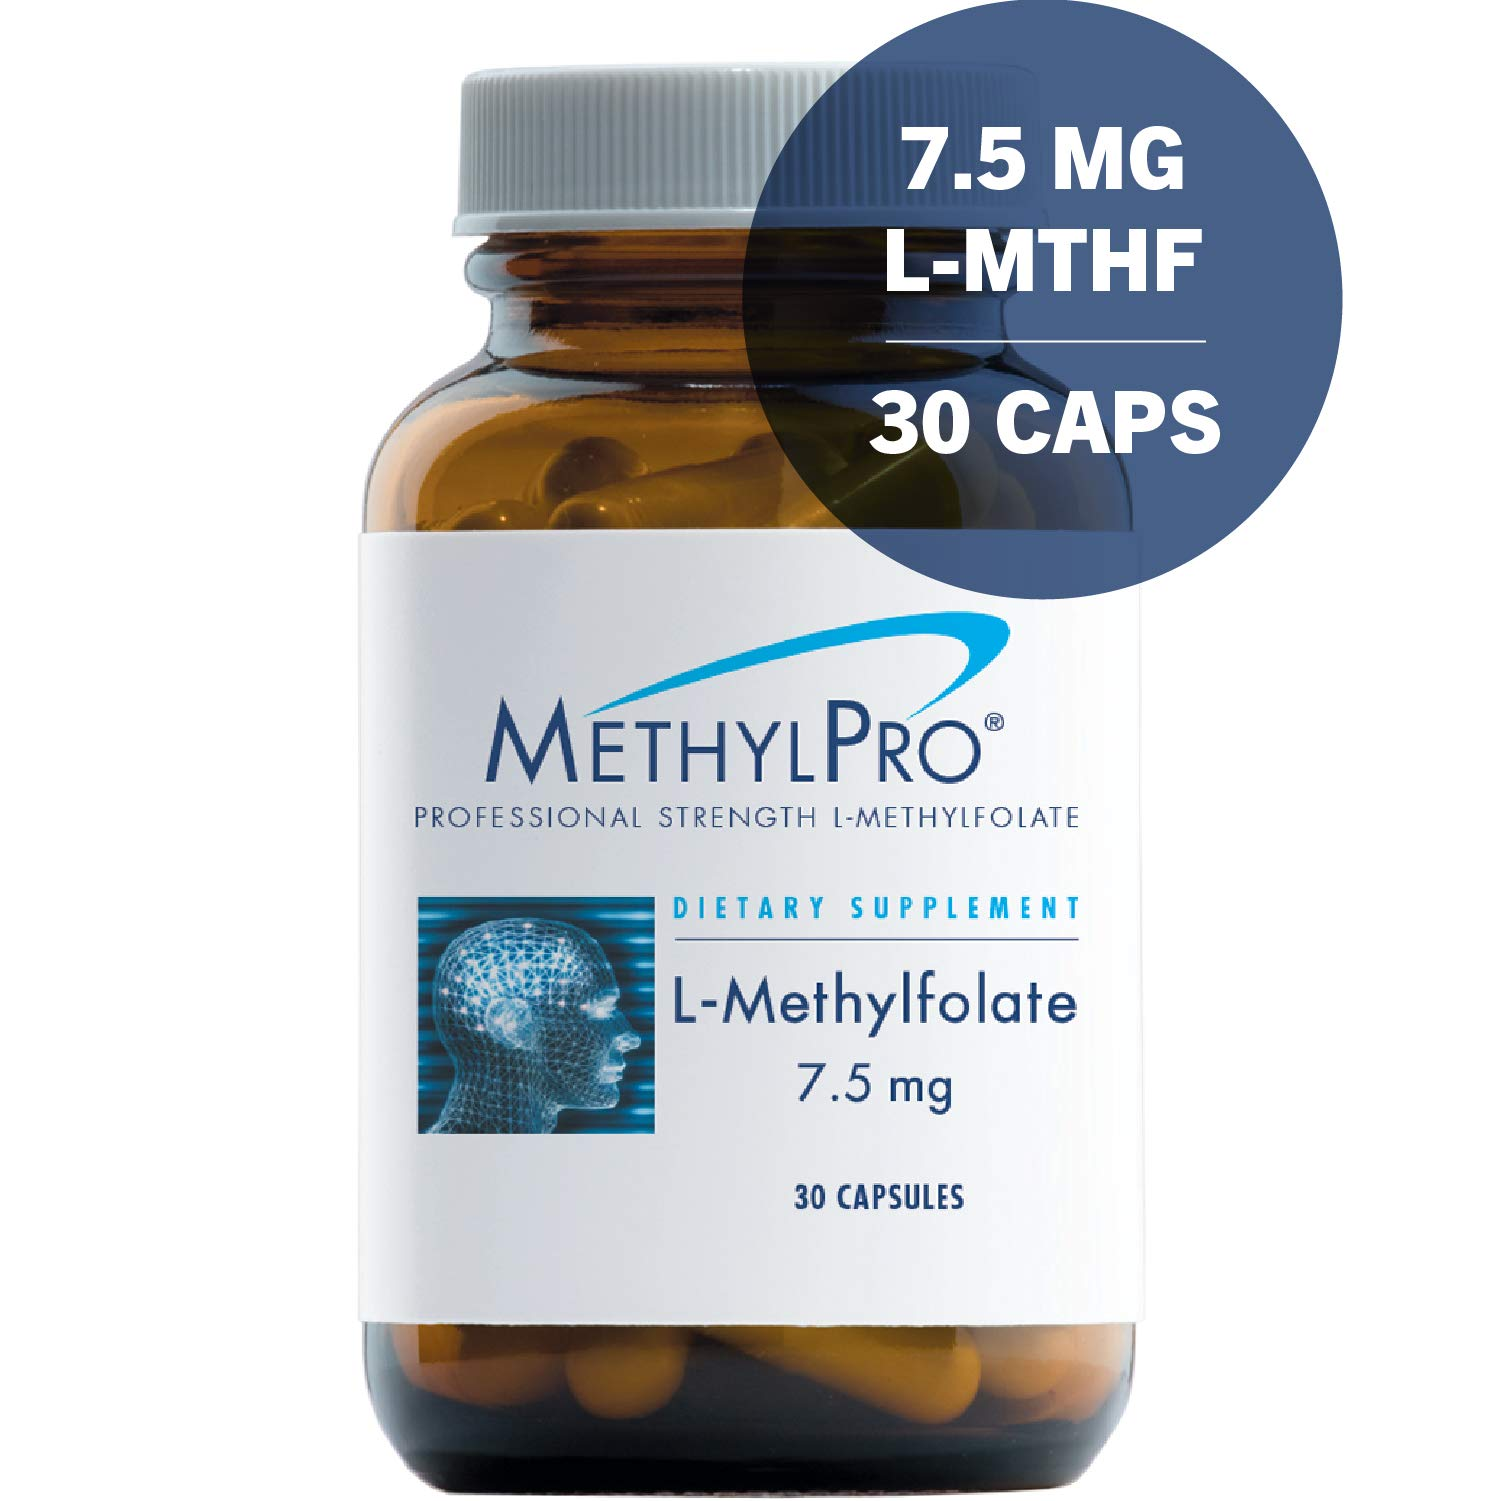 MethylPro 7.5mg L-Methylfolate 30 Capsules - No Fillers, Professional Strength 7500mcg Active Folate, 5-MTHF for Mood, Homocysteine Methylation + Immune Support, Non-GMO + Gluten-Free by MethylPro